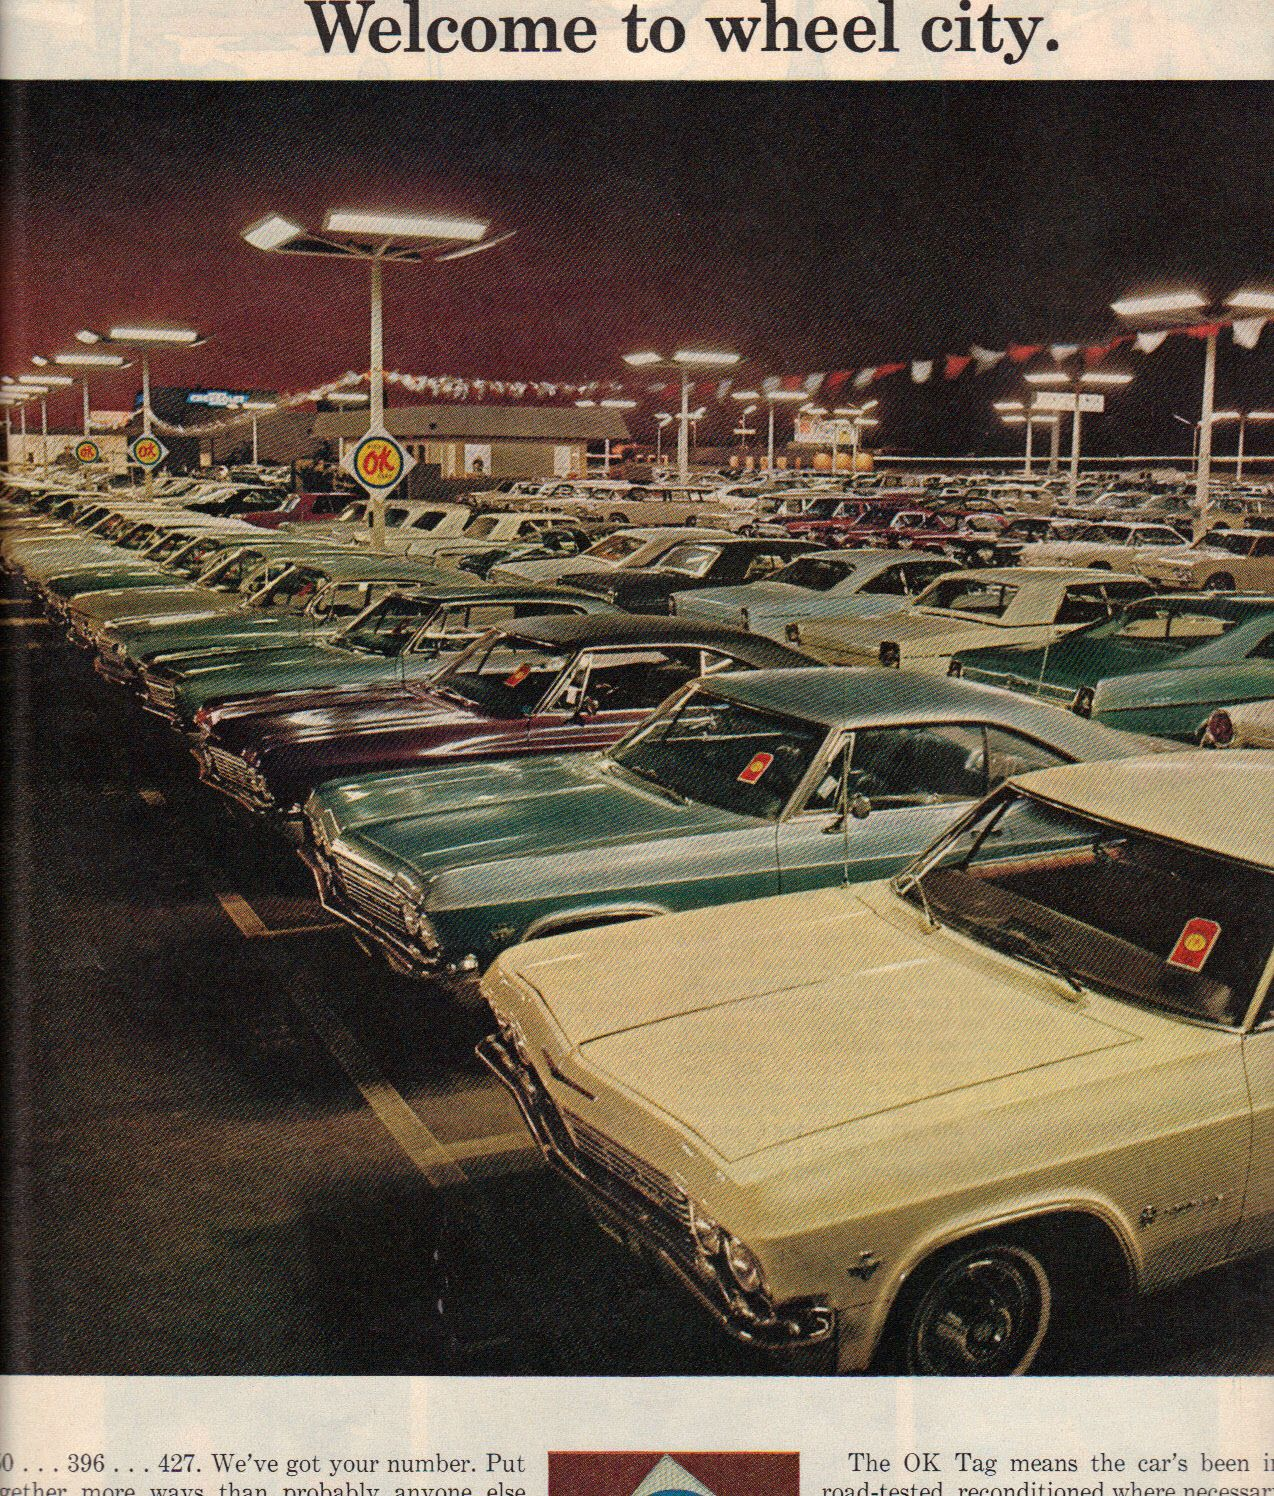 Cars and more chevy impala chevy impalas vehicles drag racing racing - 1965 Impala And More For Sale